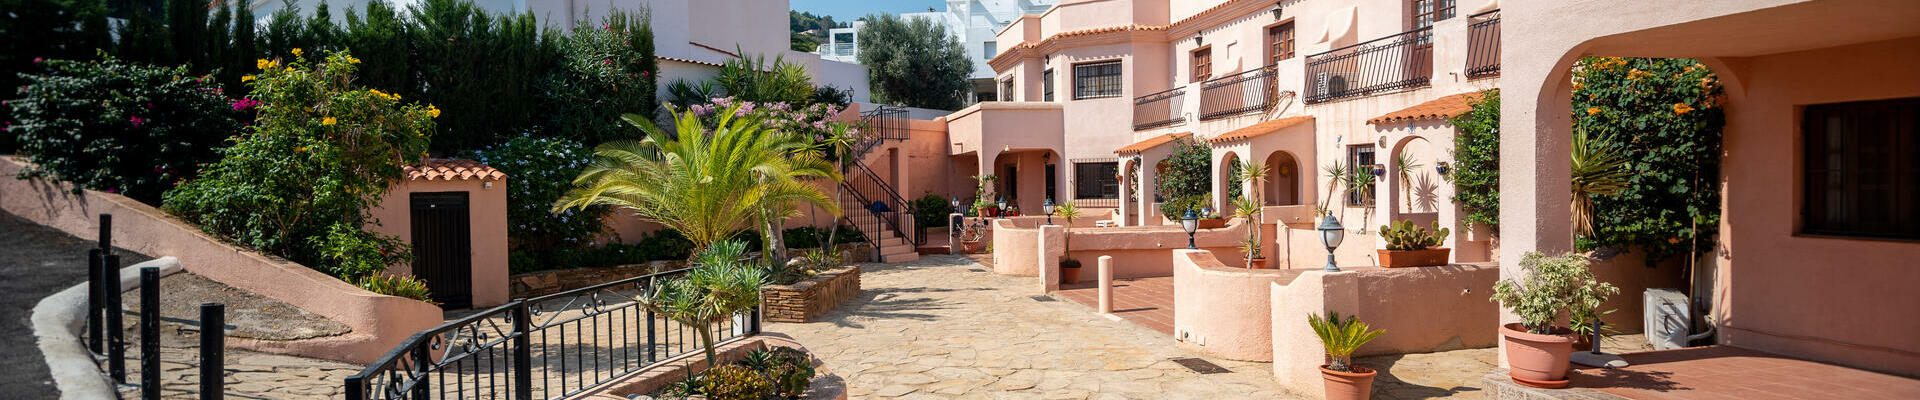 A1442: 2 Bedroom Apartment for Sale